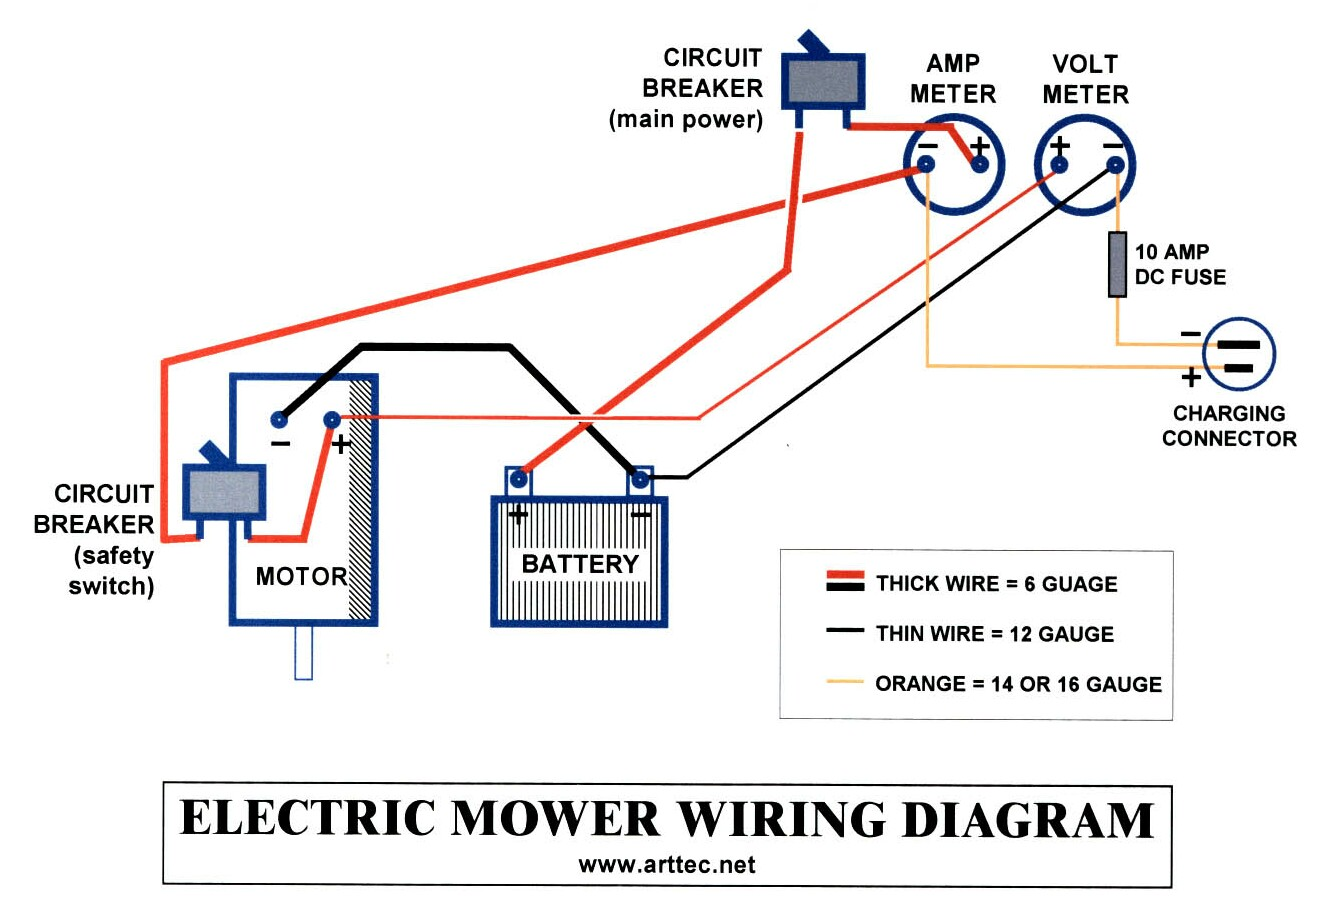 Wiring Diagram For Tiny House The Wiring Diagram readingratnet